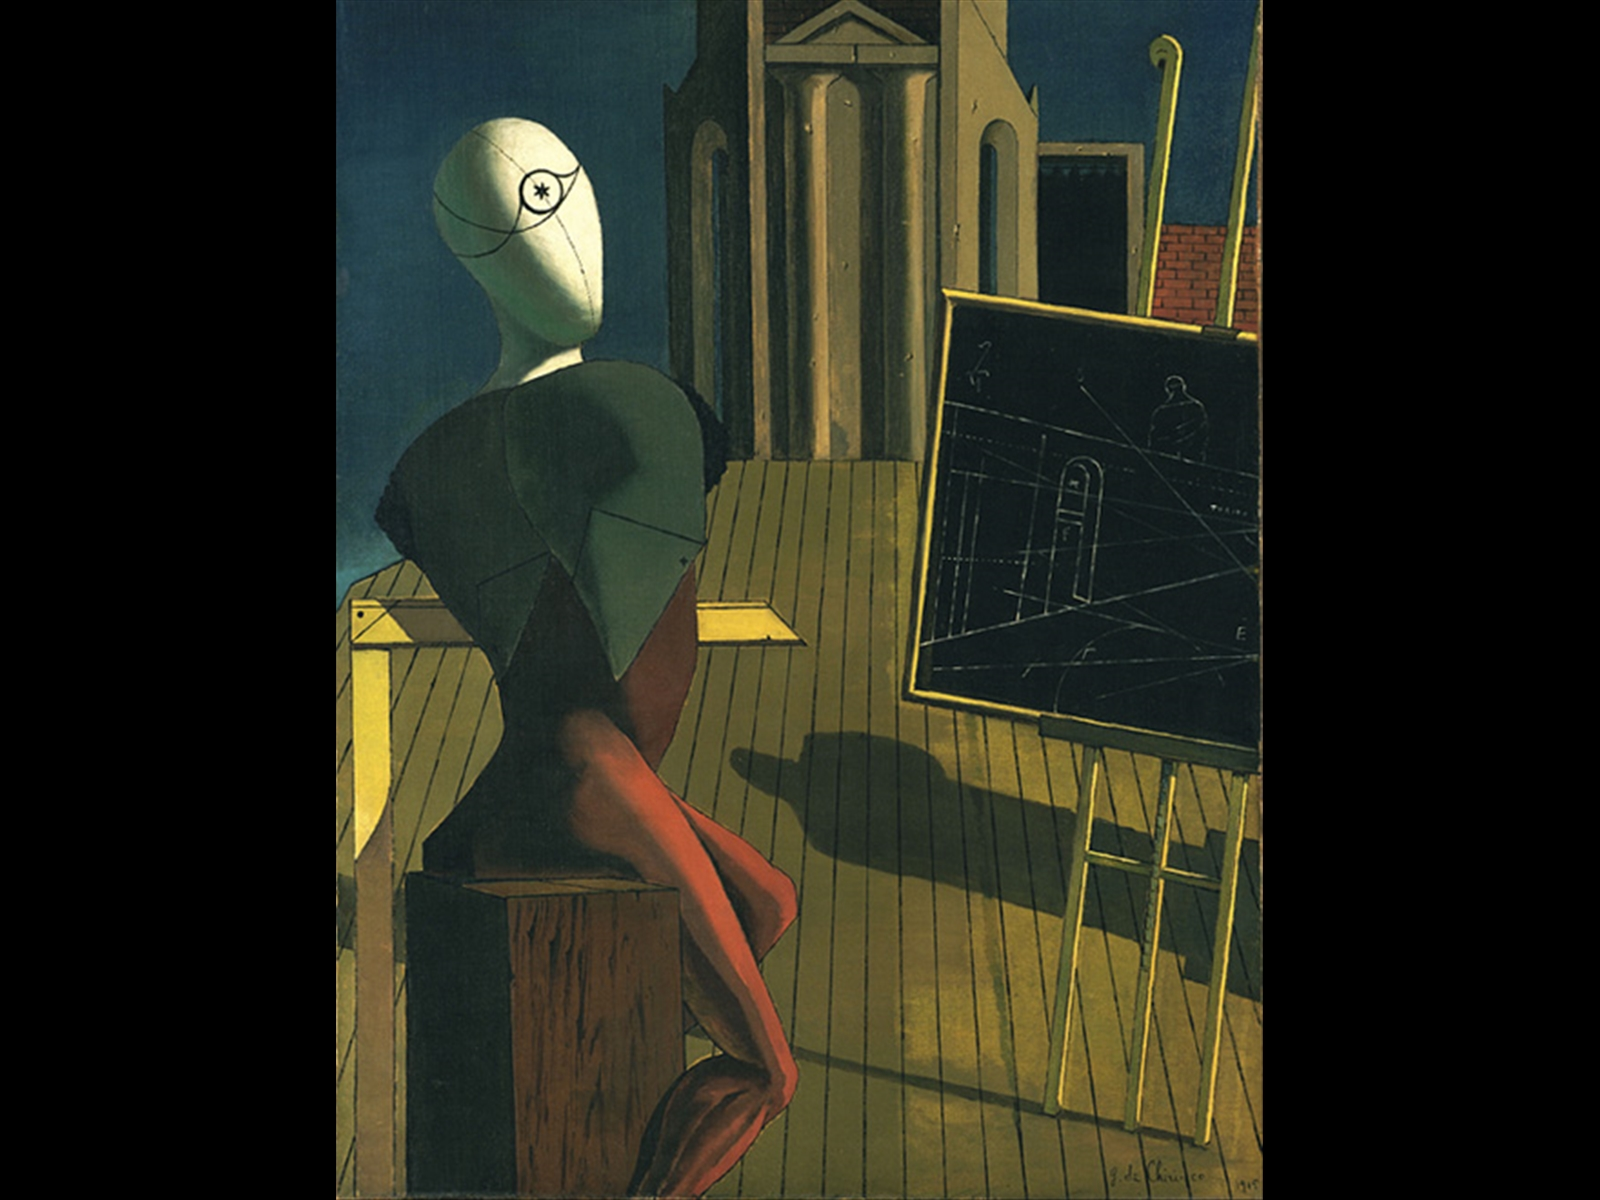 The Museum of Modern Art, New York James Thrall Soby Bequest, 1979 Acc.1214.1979 © Fondazione Giorgio e Isa de Chirico by SIAE 2010